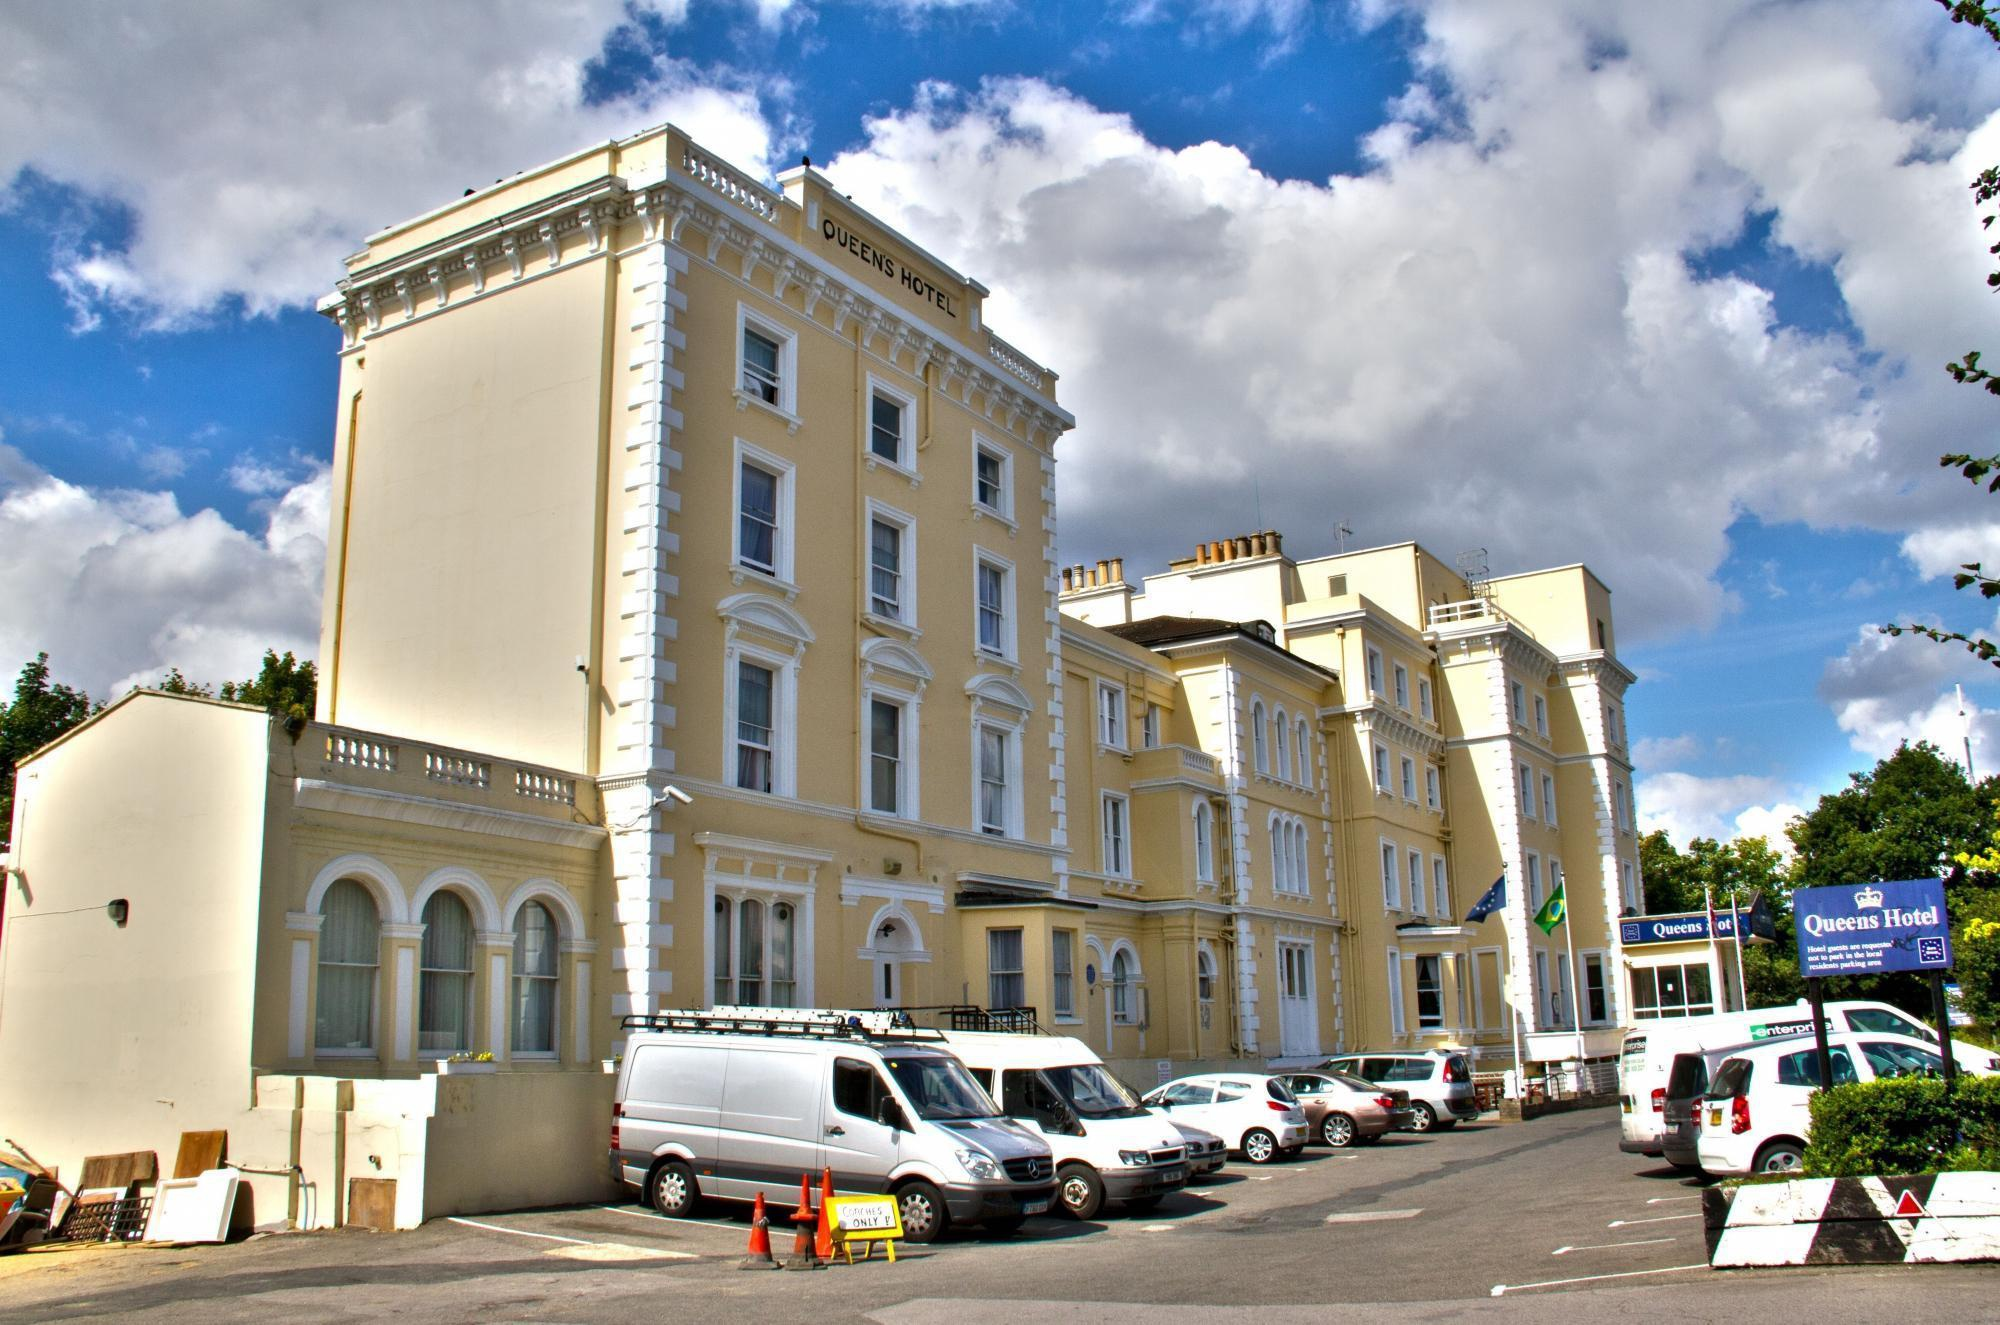 Best Western London Queens Crystal Palace Hotel